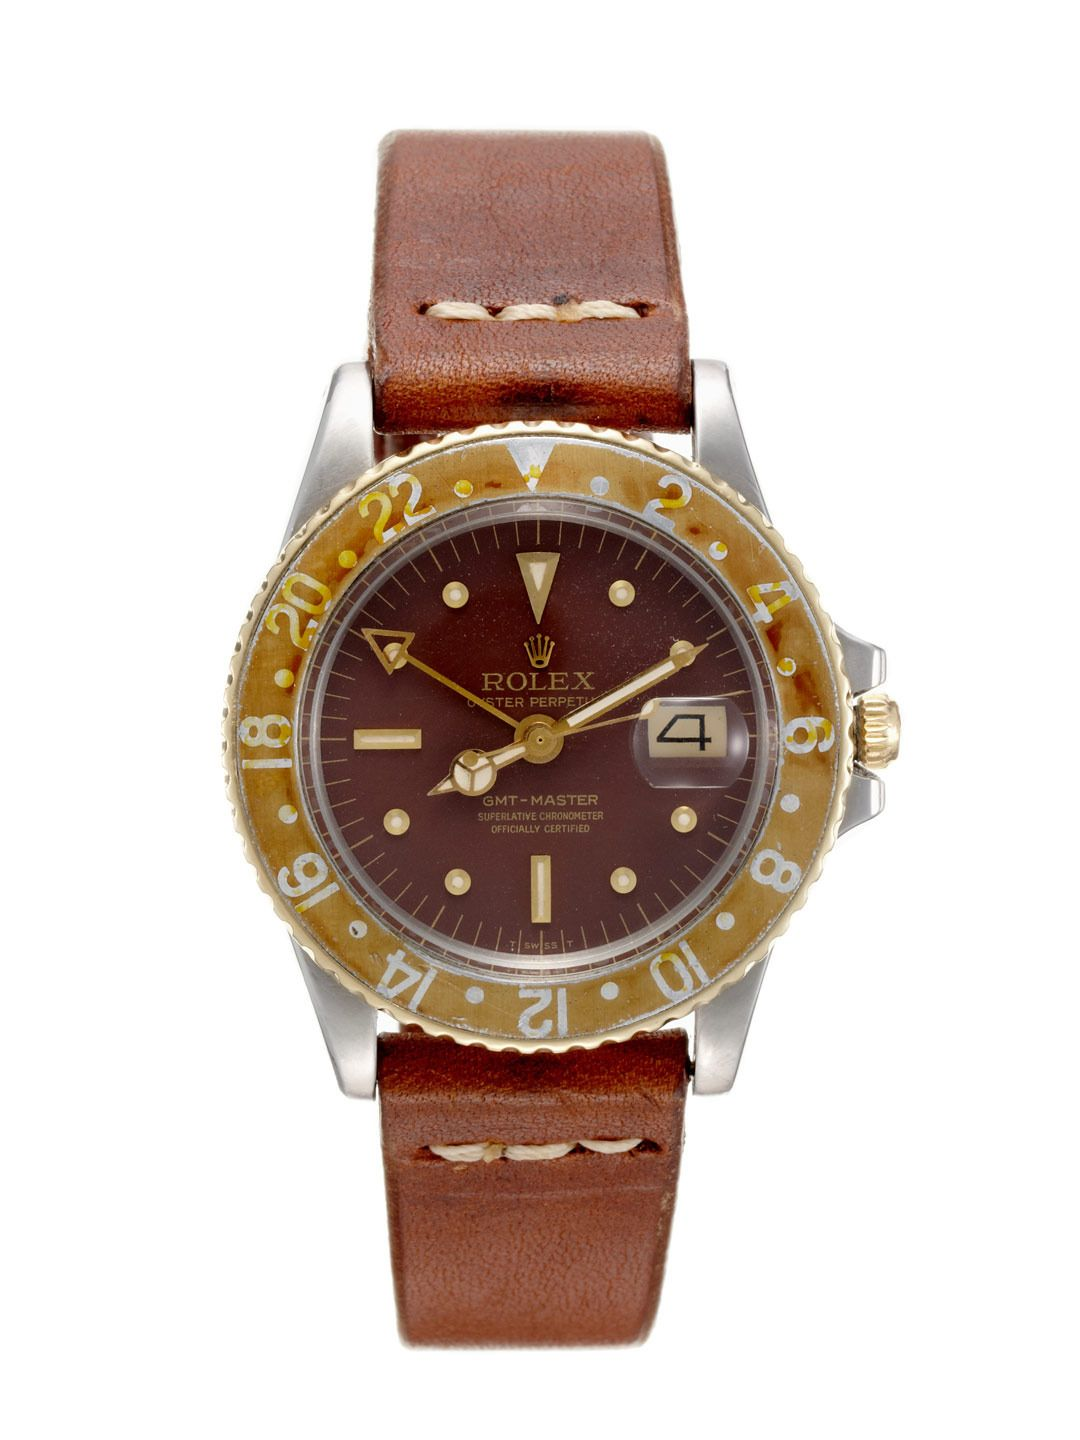 Rolex stainless steel u yellow gold oyster perpetual gmtmaster